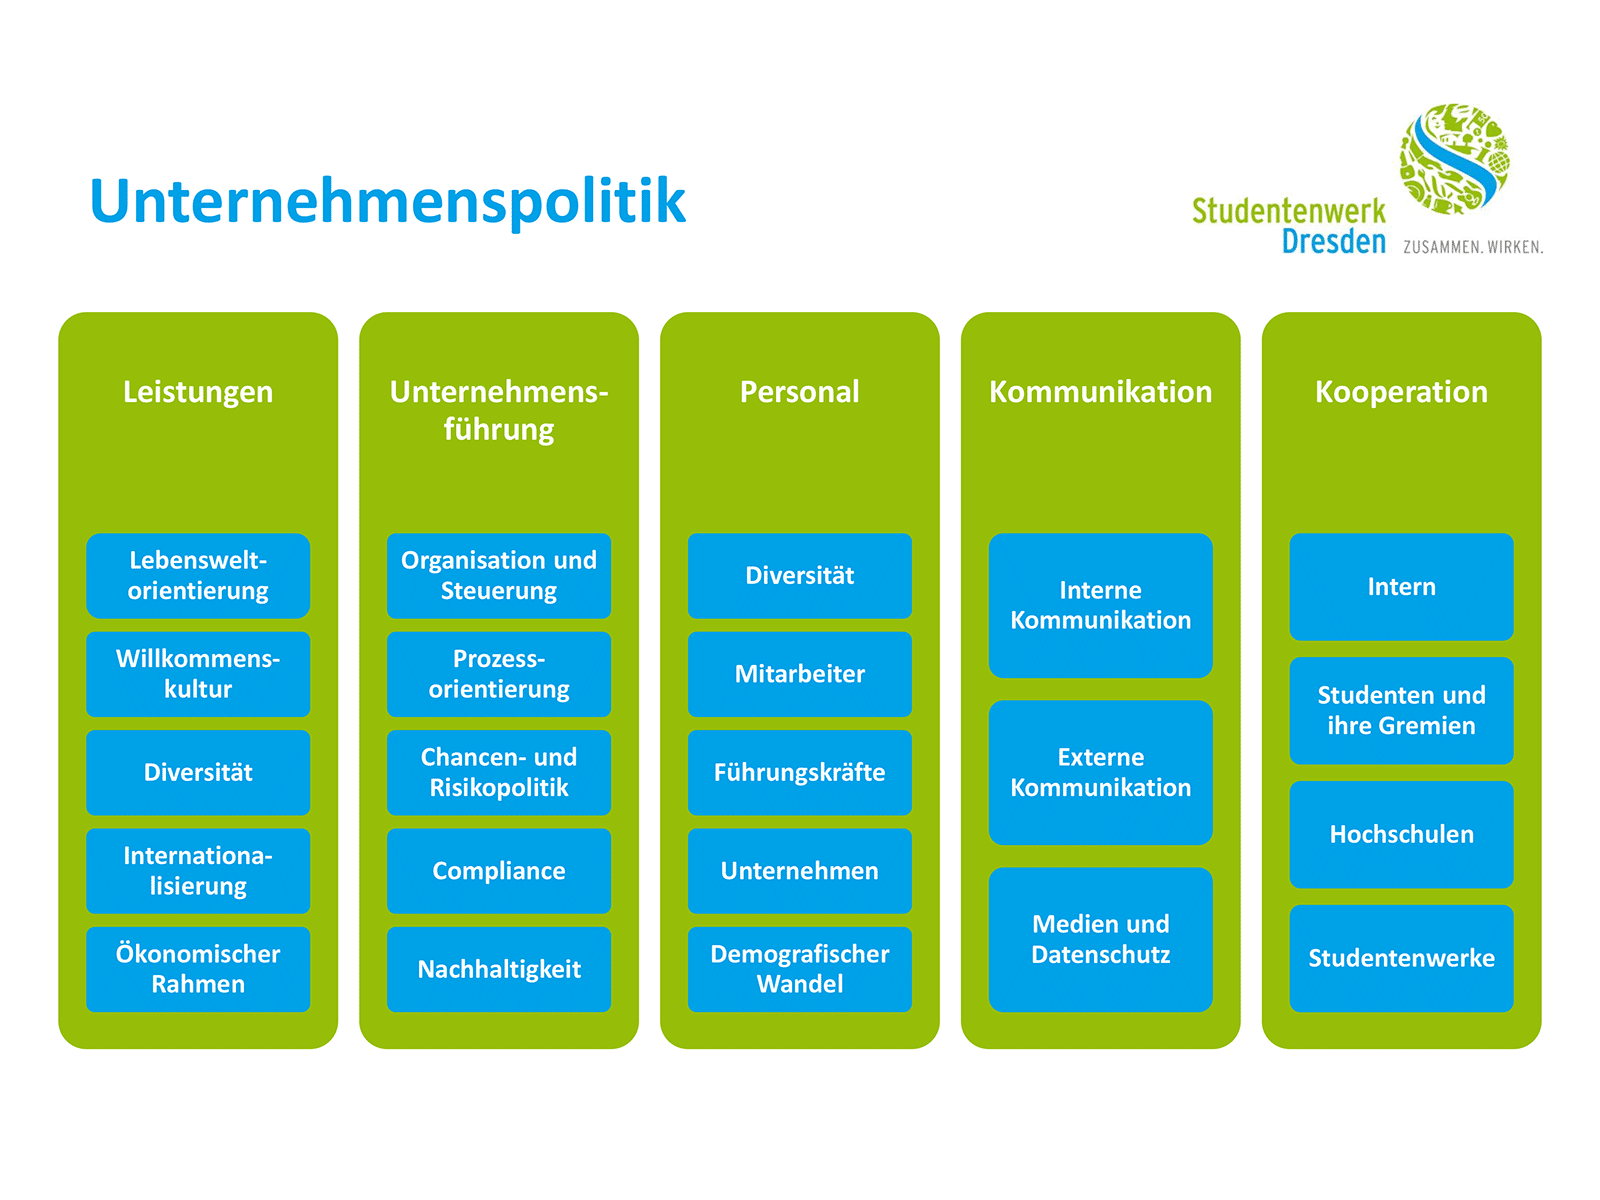 Diagram of the Studentenwerk Dresden corporate policy